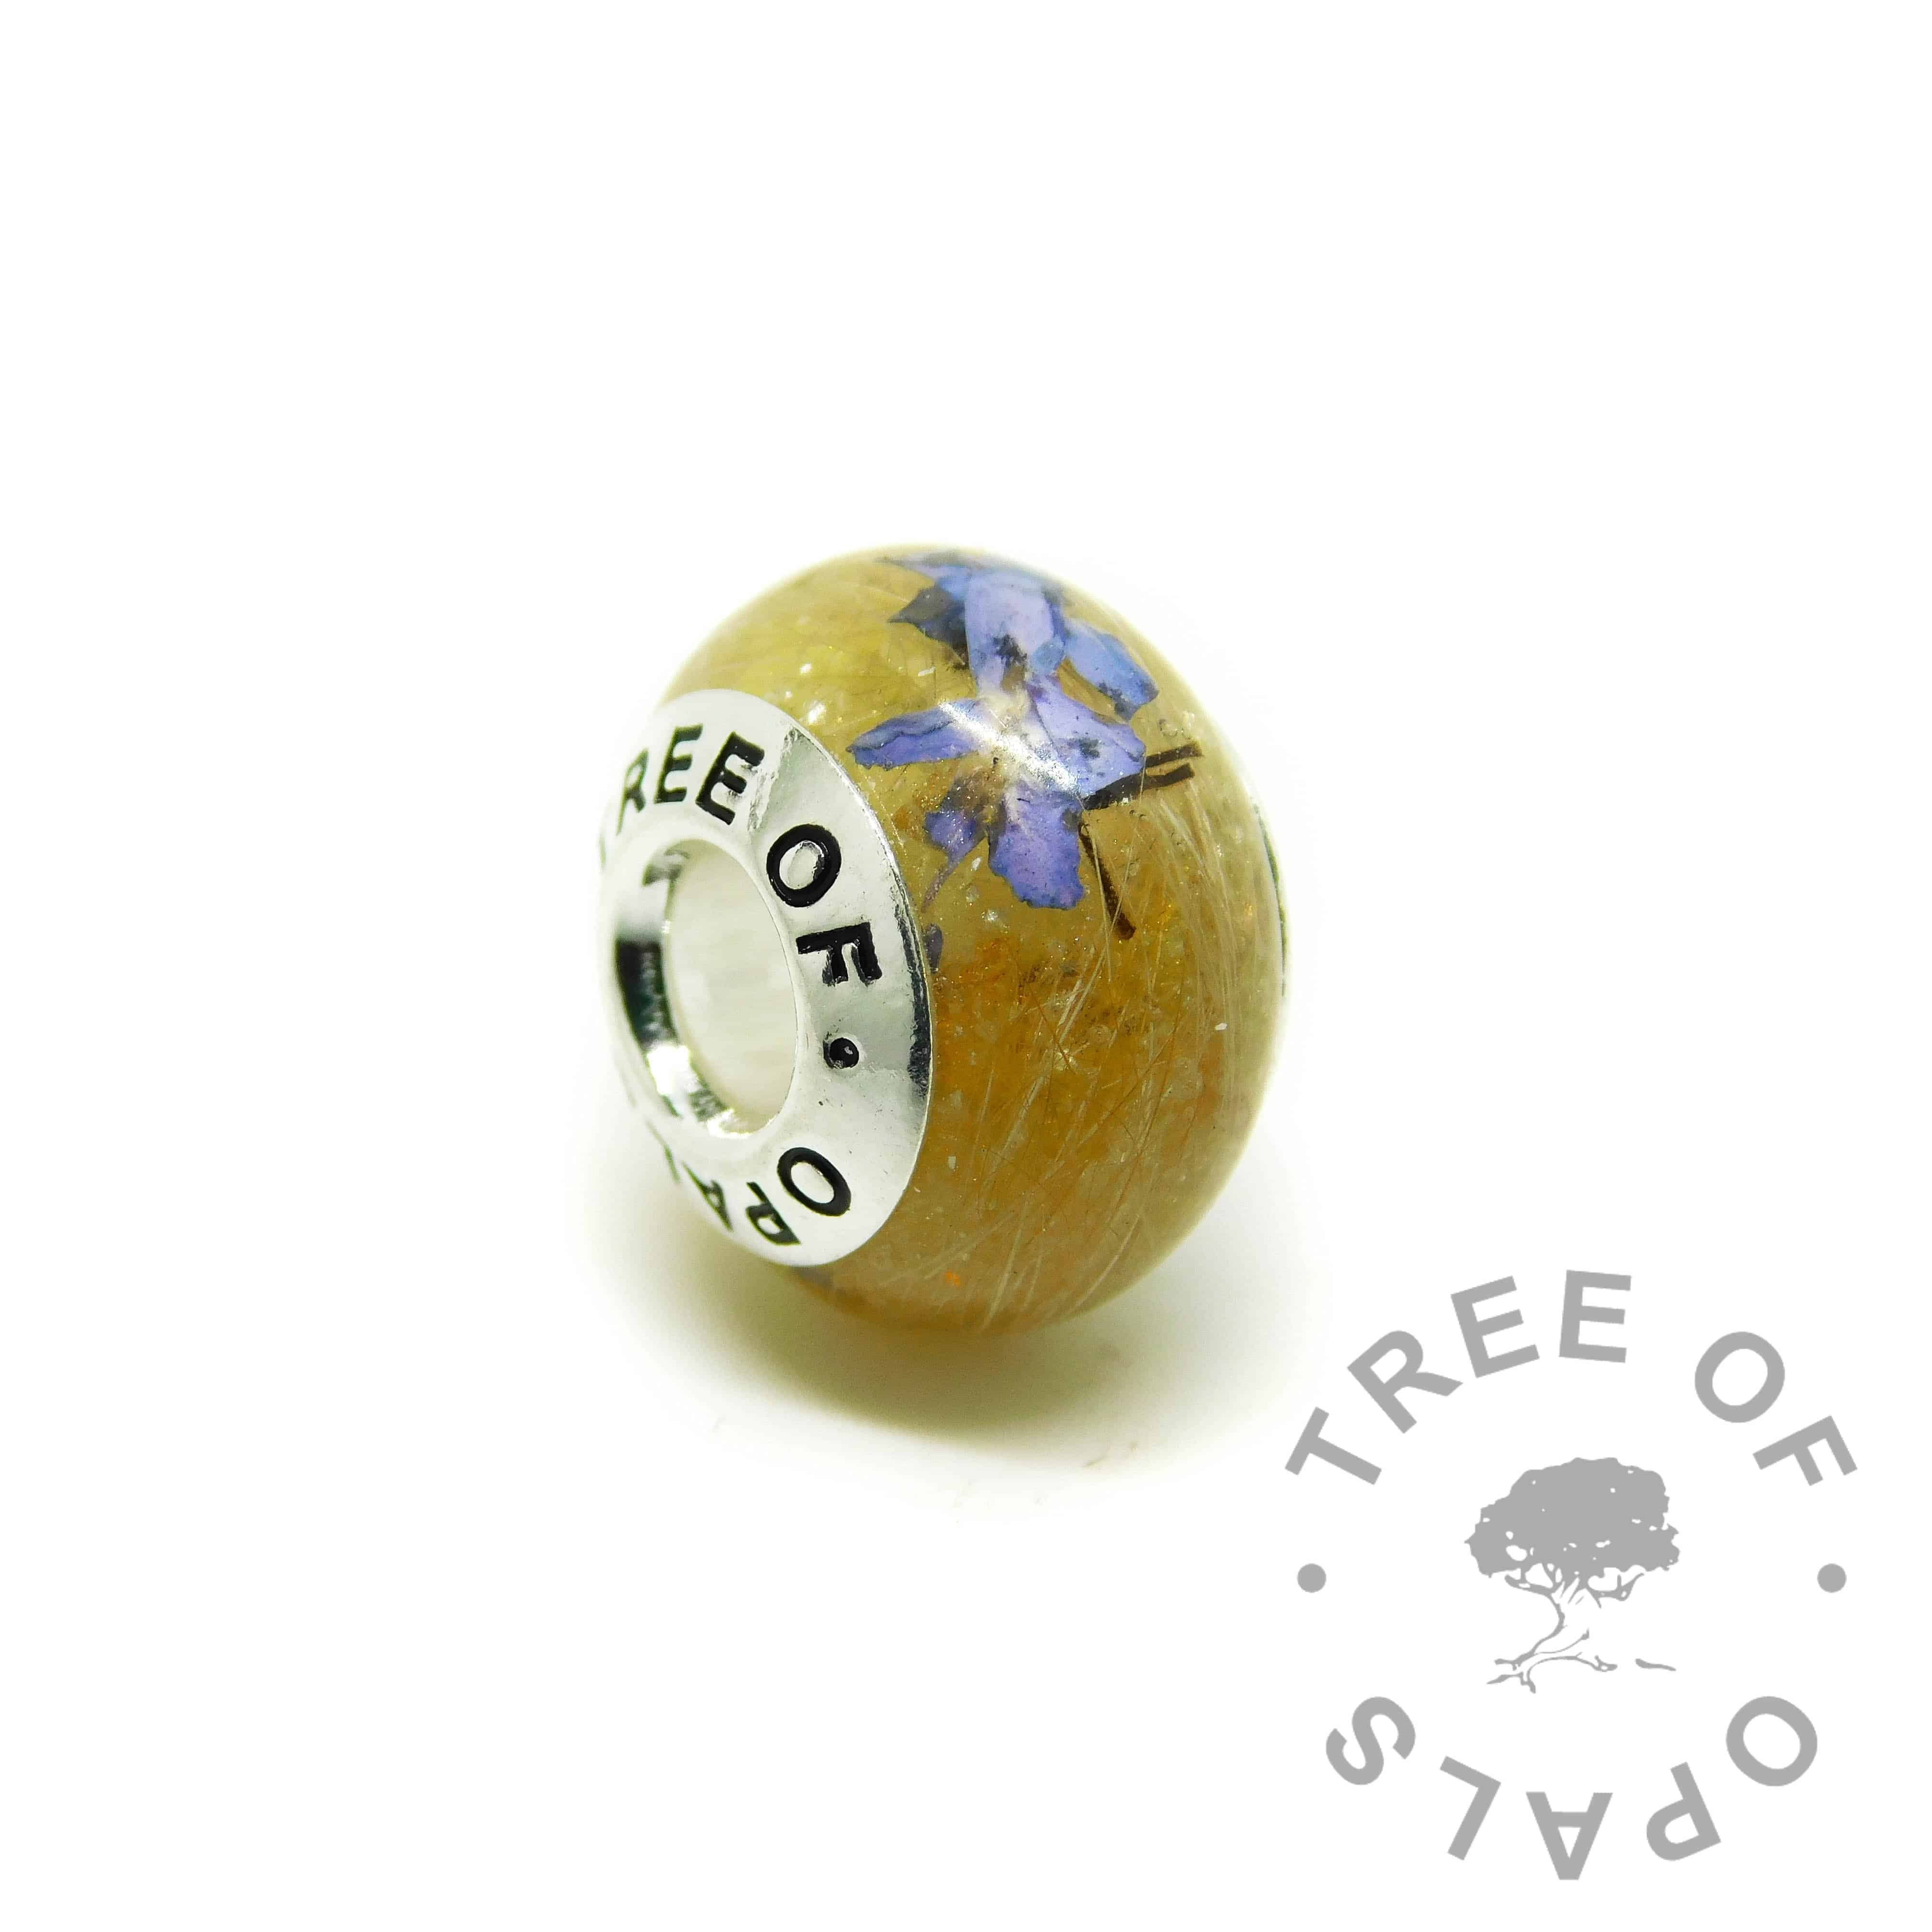 chimera yellow resin sparkle mix lock of hair charm. Forget-me-not flower addition and dog fur